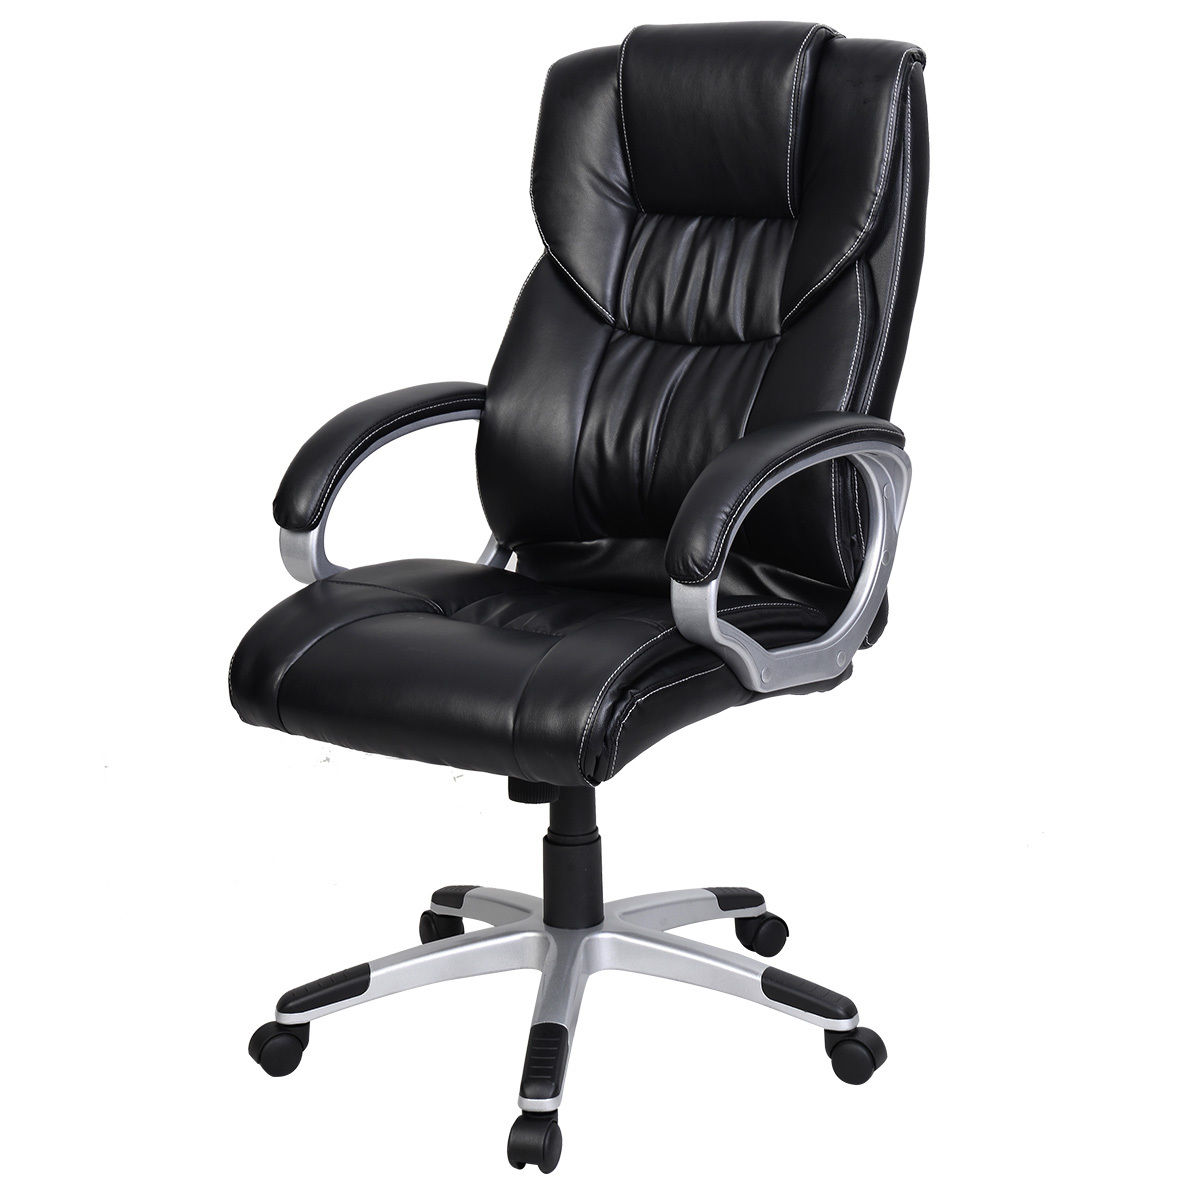 PU Leather High Back Office Chair 23.6